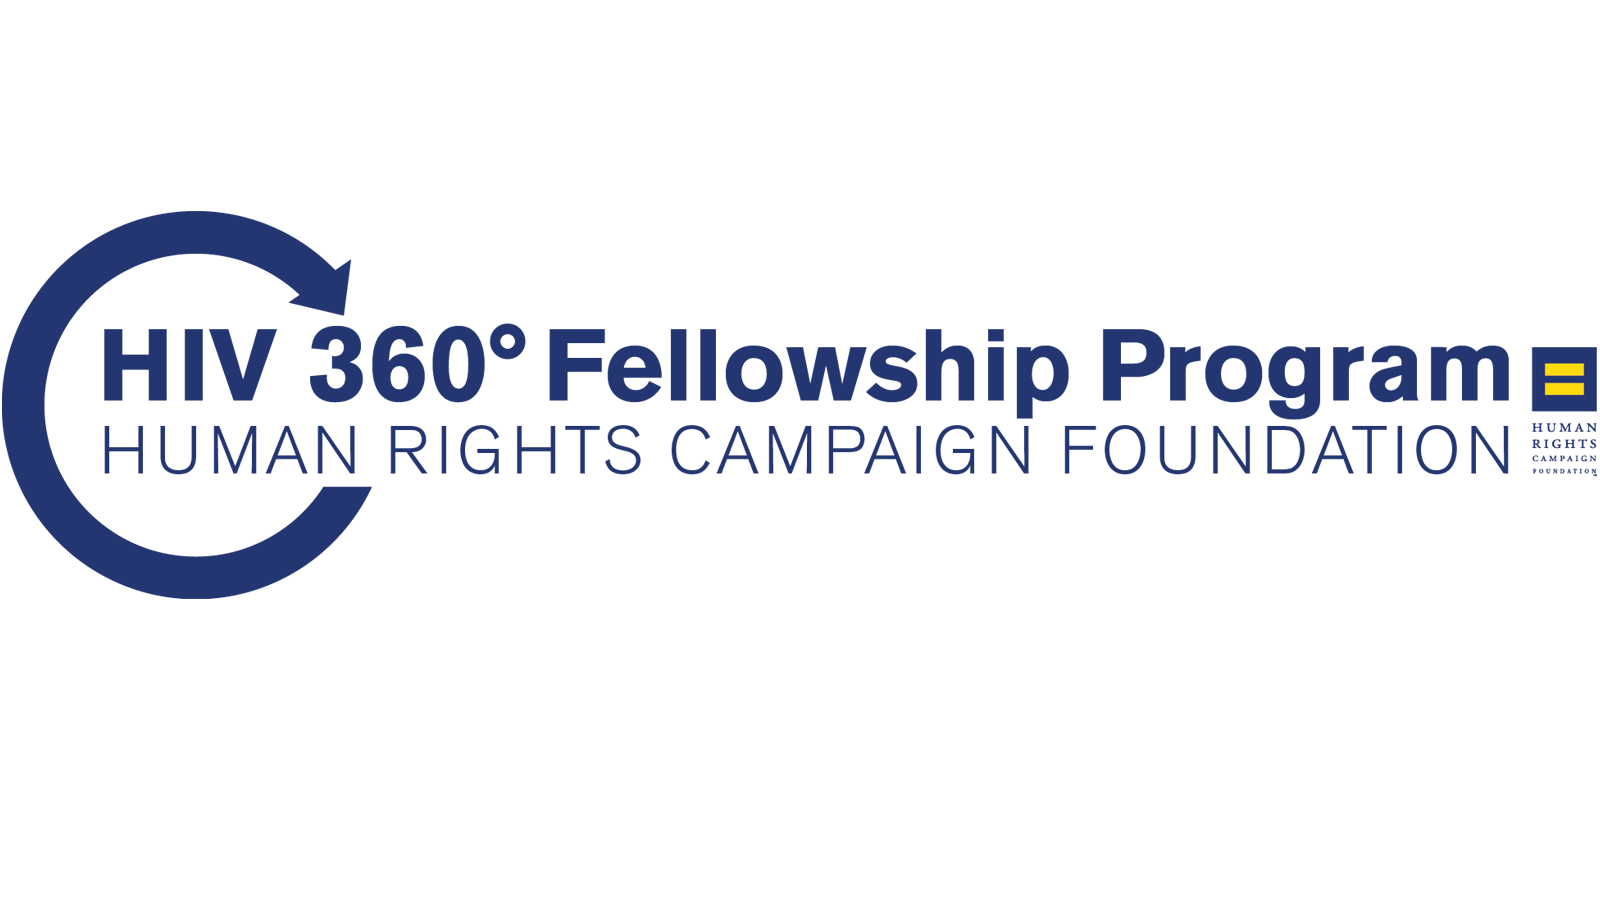 HIV 360 Fellowship Program